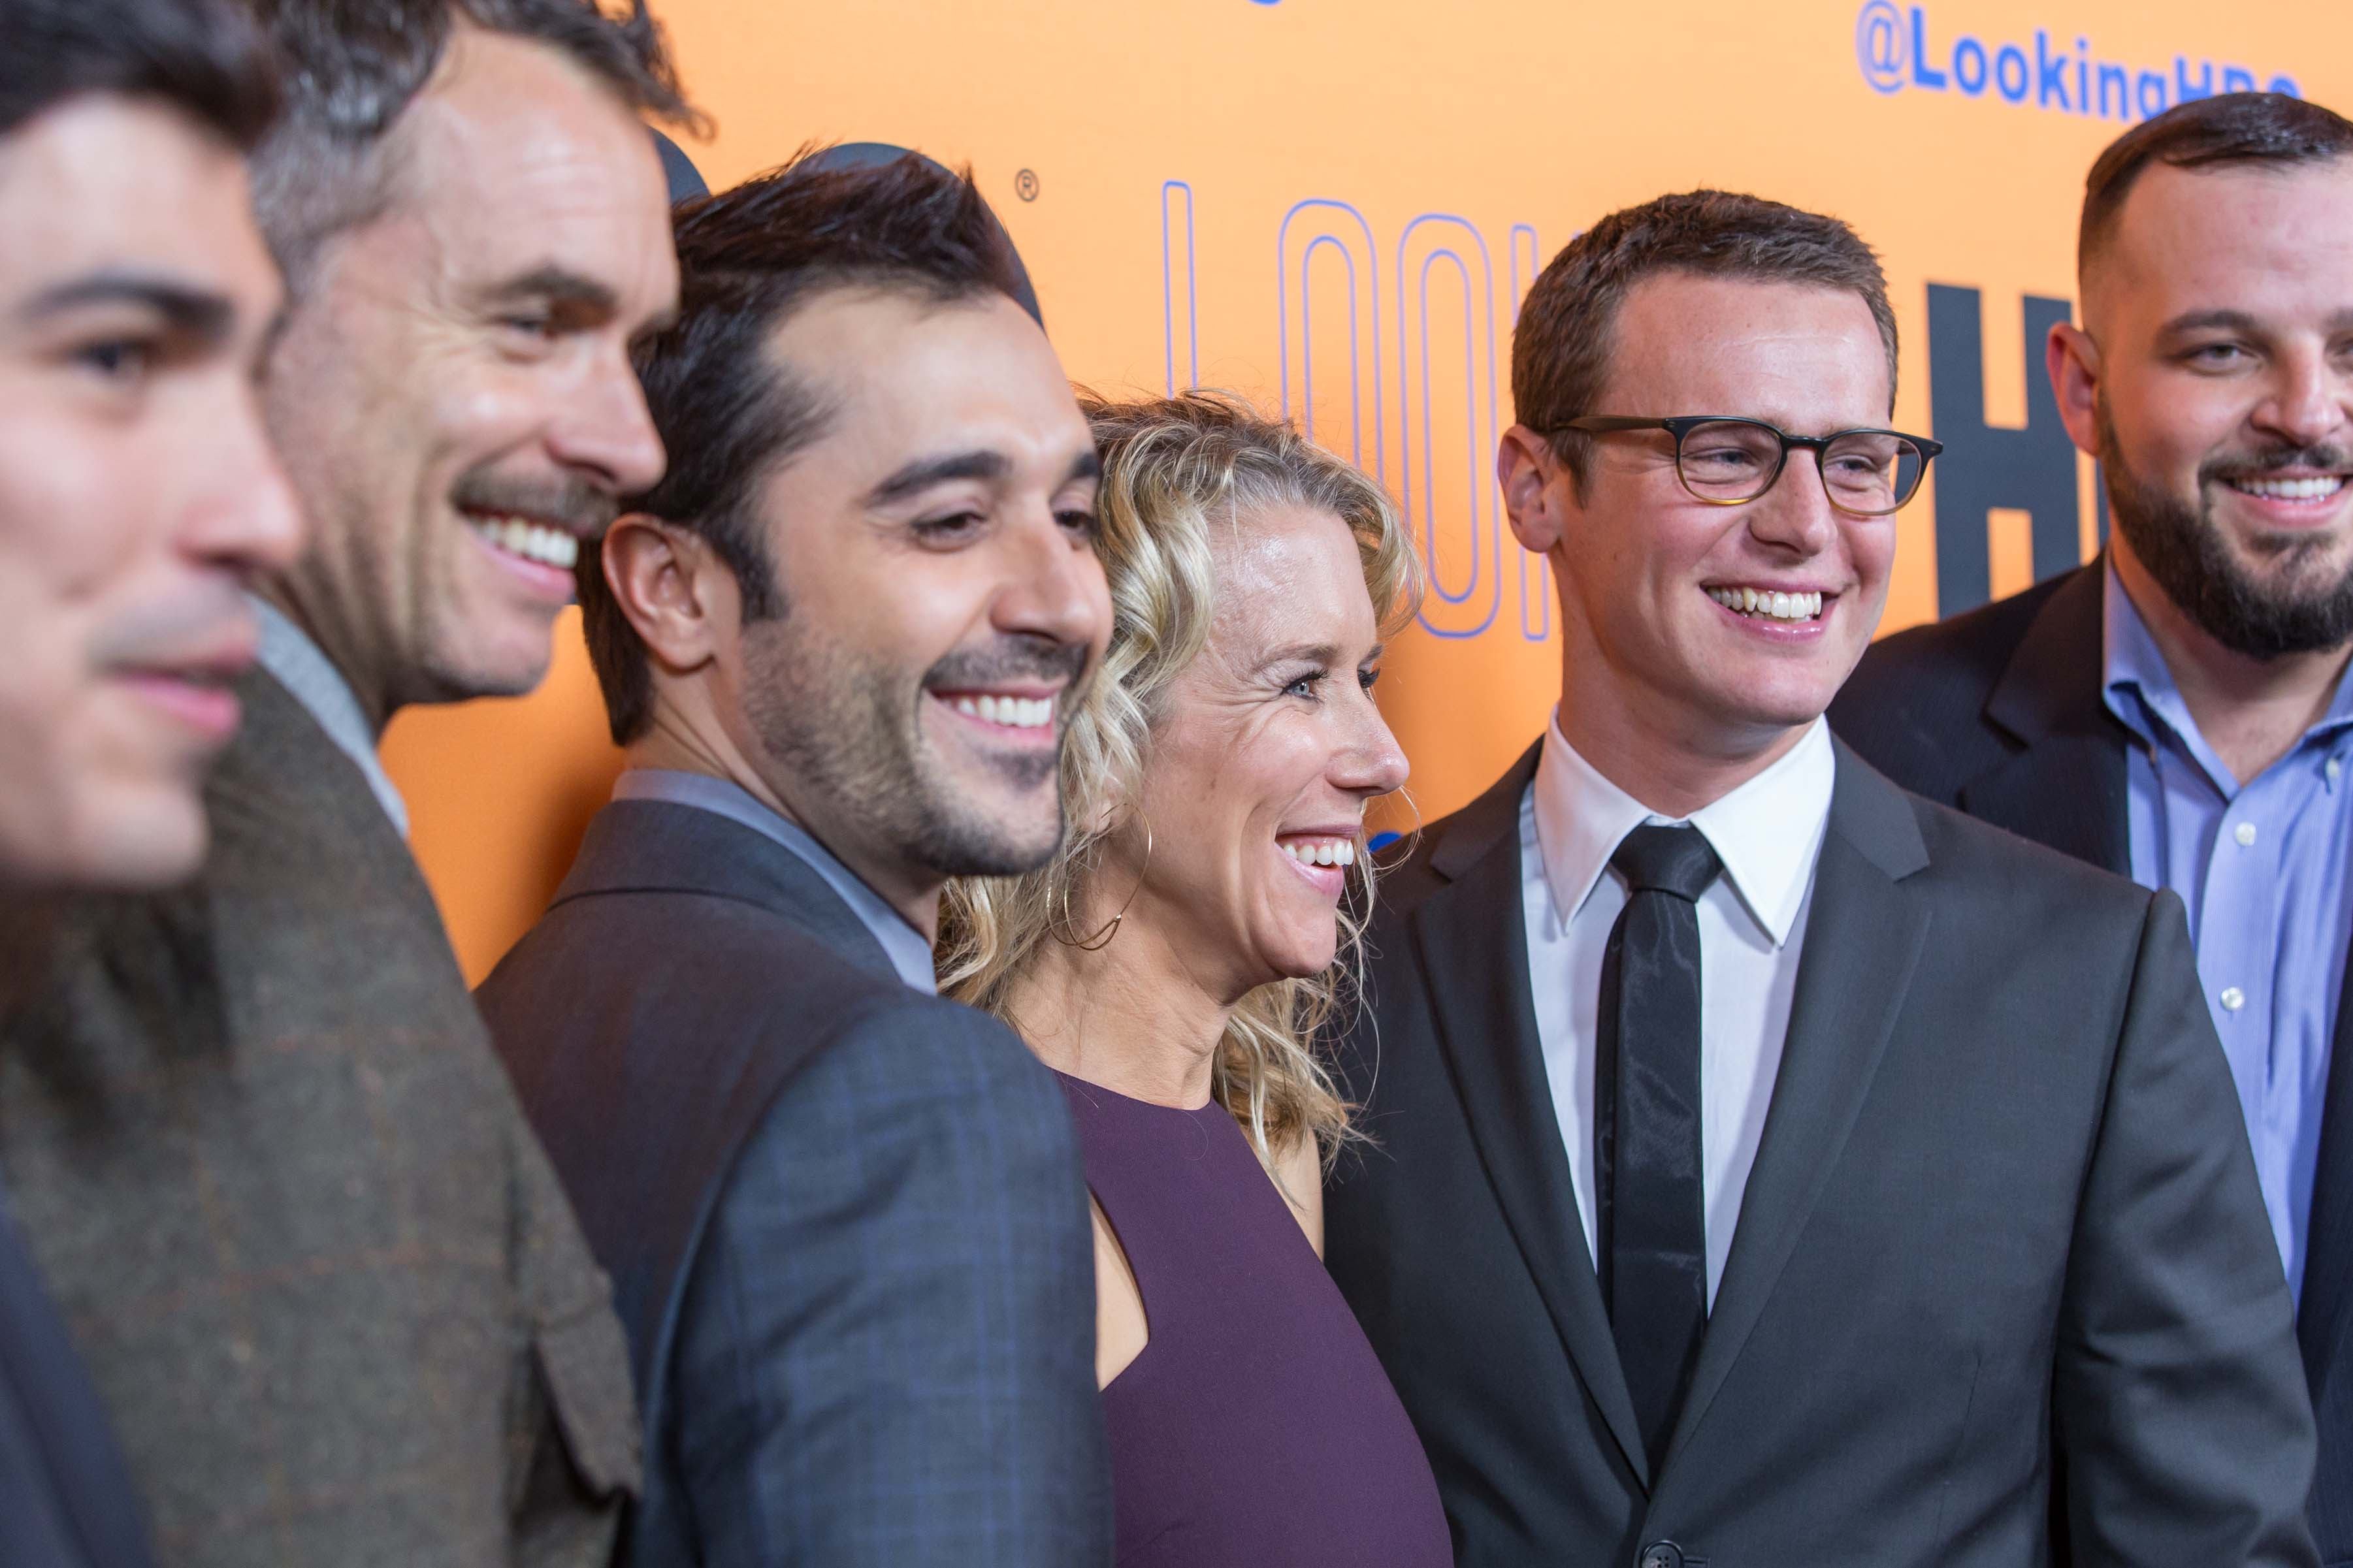 World Premiere of Season 2 of Looking